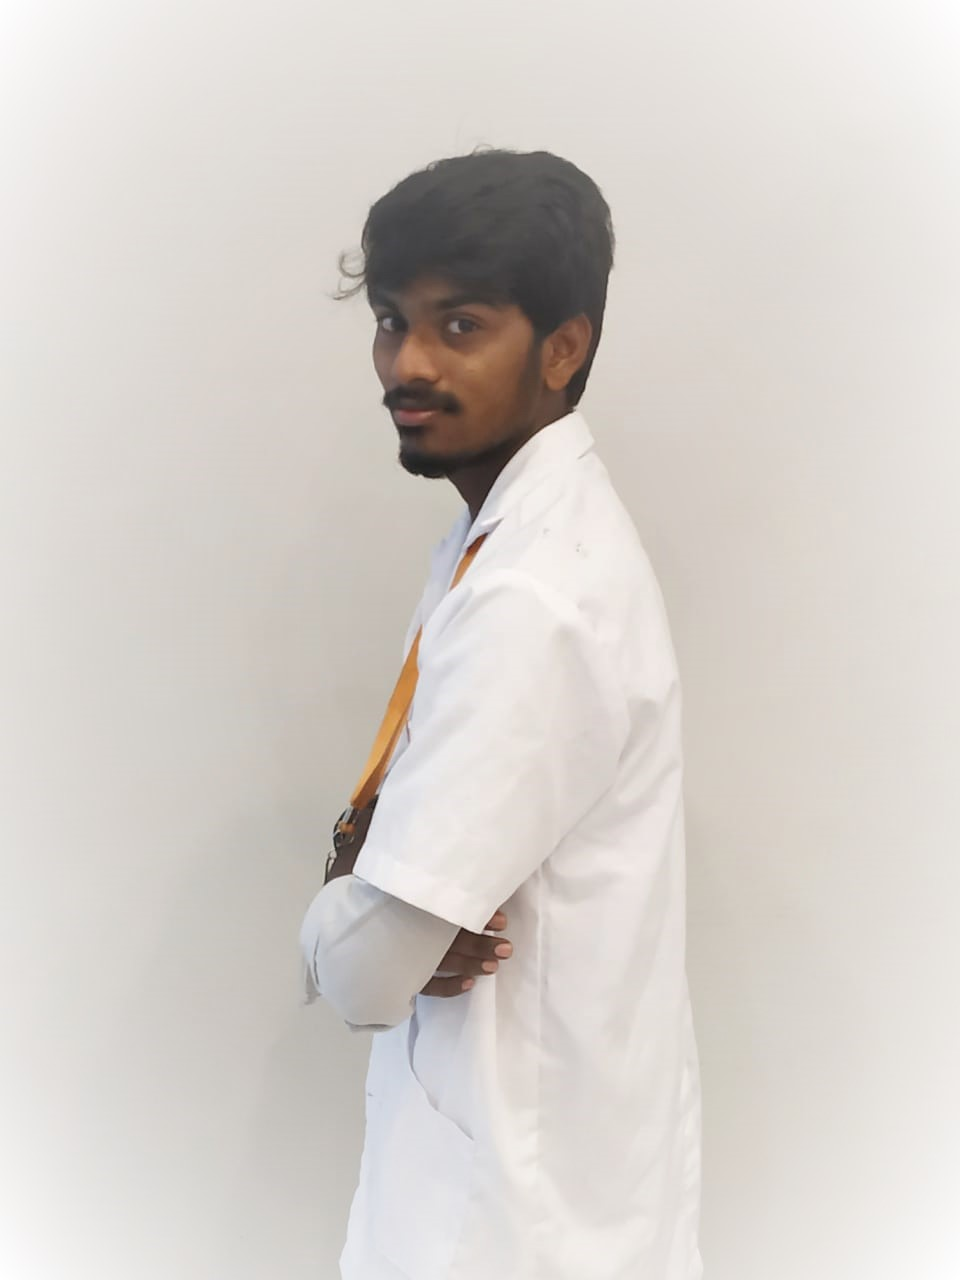 Male Lab technician with lab coat